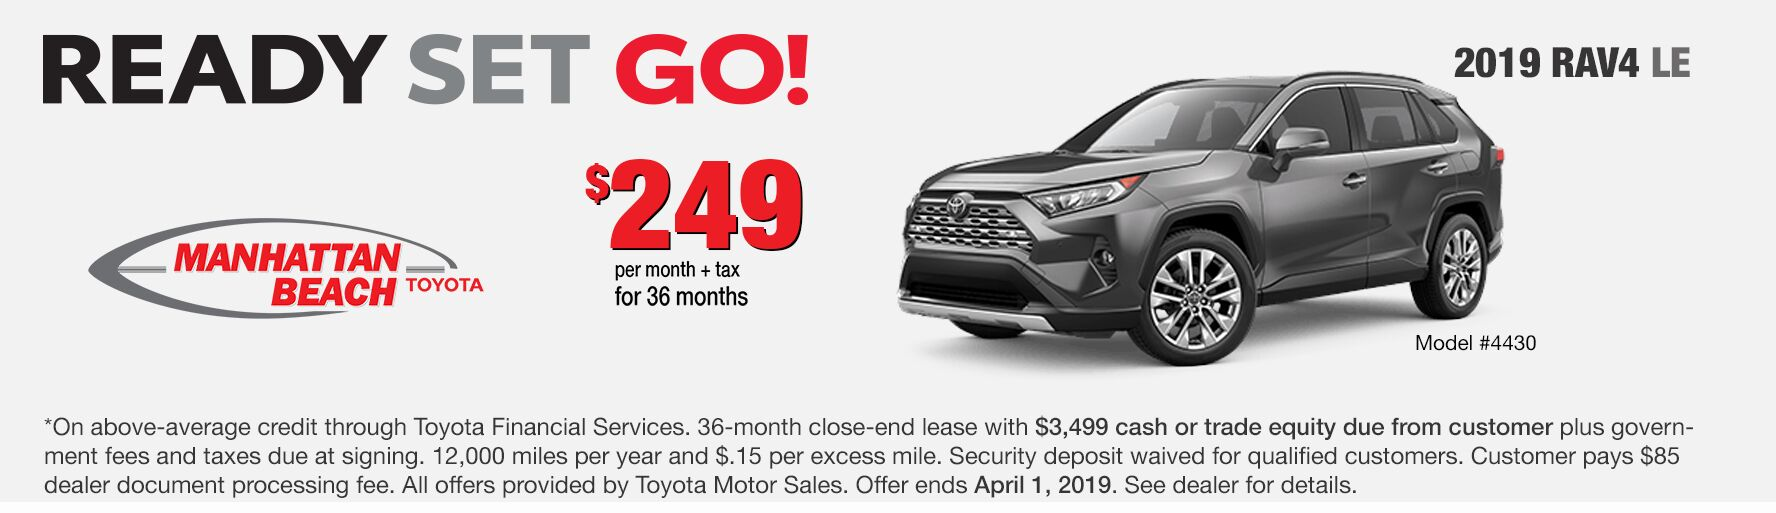 2019 RAV LE Lease special